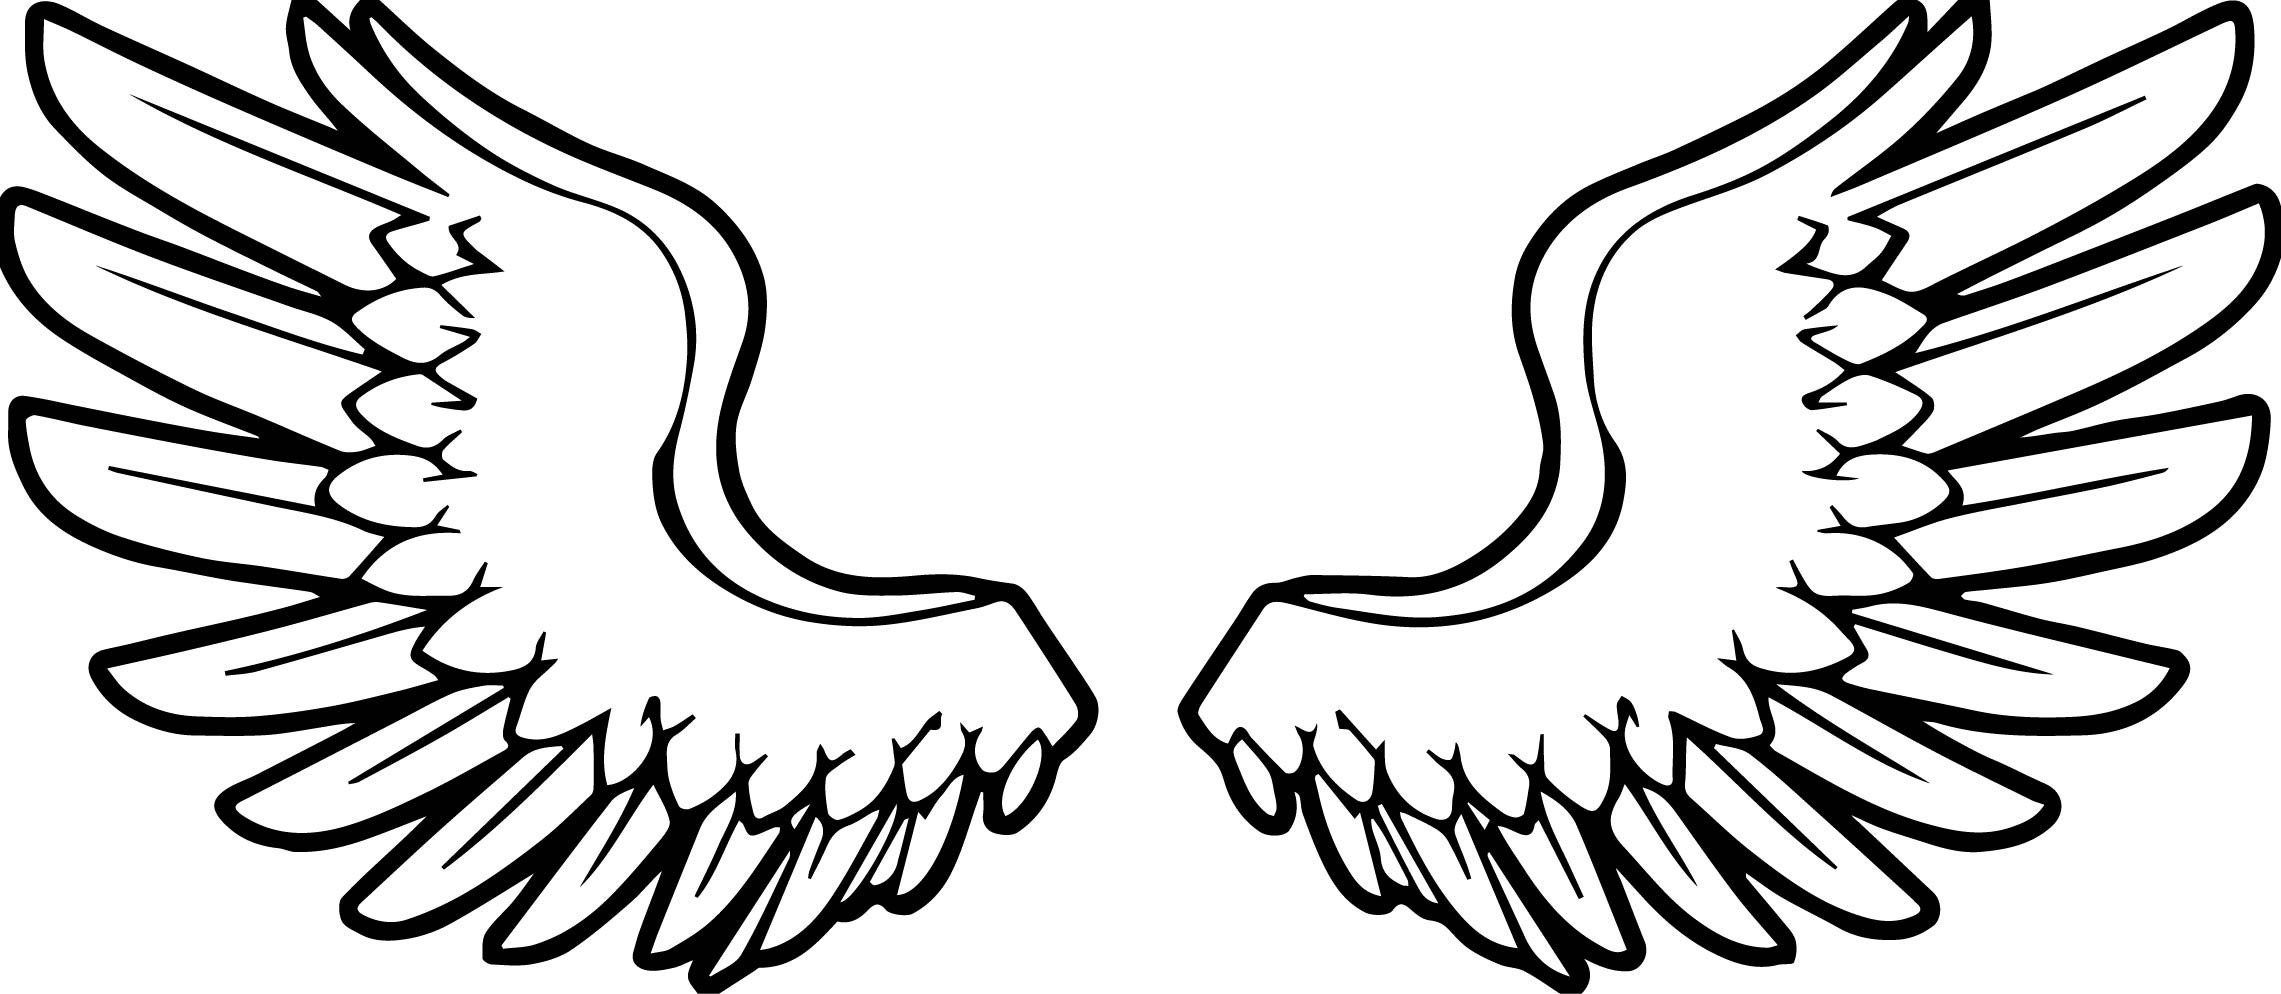 Wings Coloring Pages  Angel Wings Coloring Pages Download